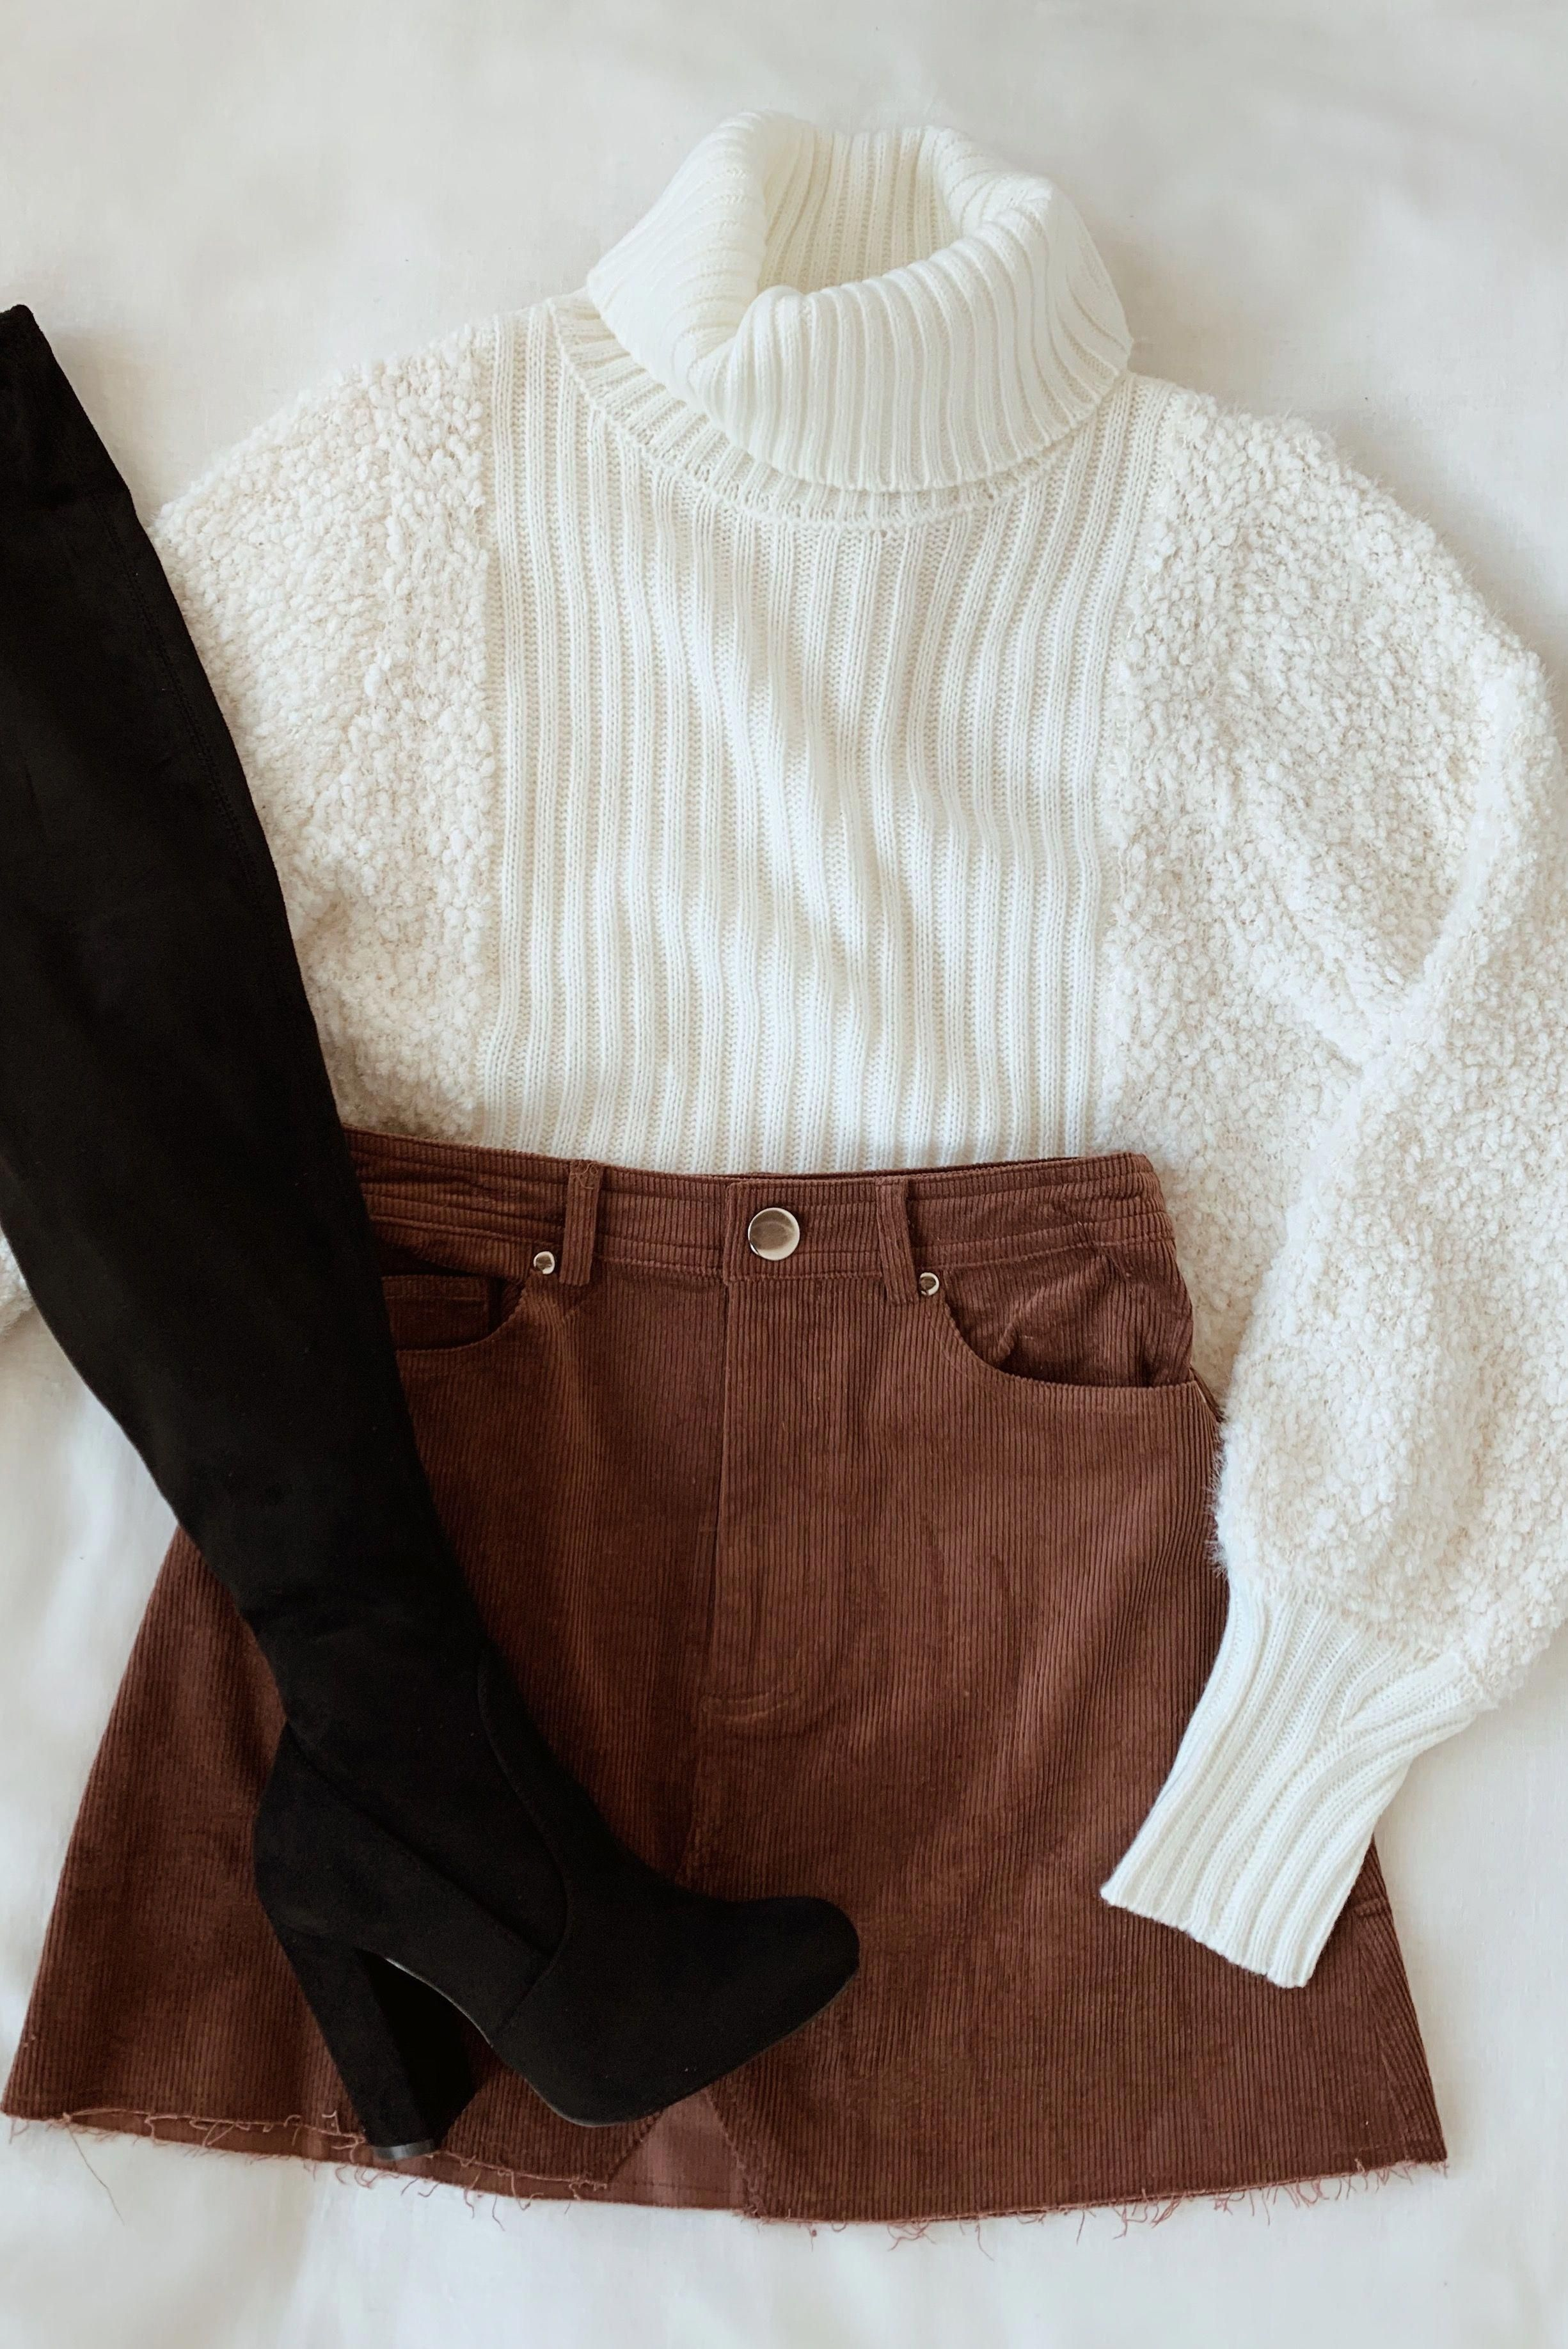 2020 Geek Knitted Christmas Sweaters Best Yet White Knit Turtleneck Cropped Sweater in 2020 | Cute